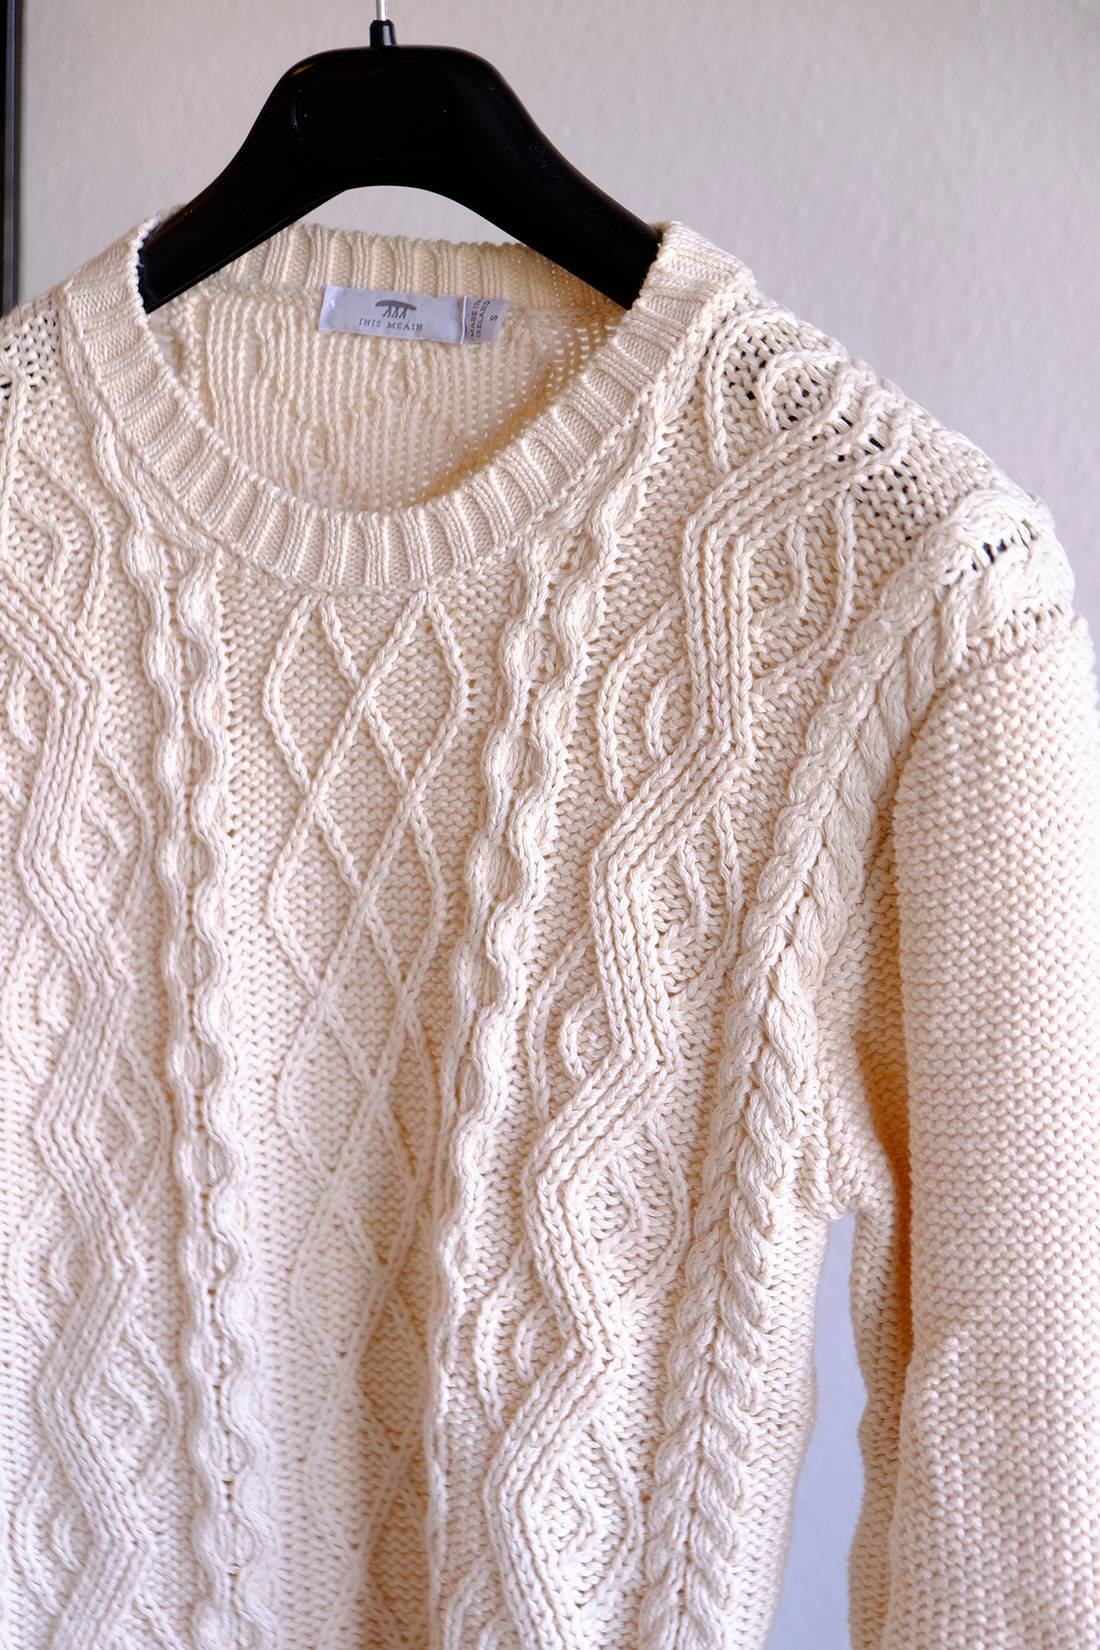 Inis Meain Ivory cotton sweater Size s - Sweaters & Knitwear for ...